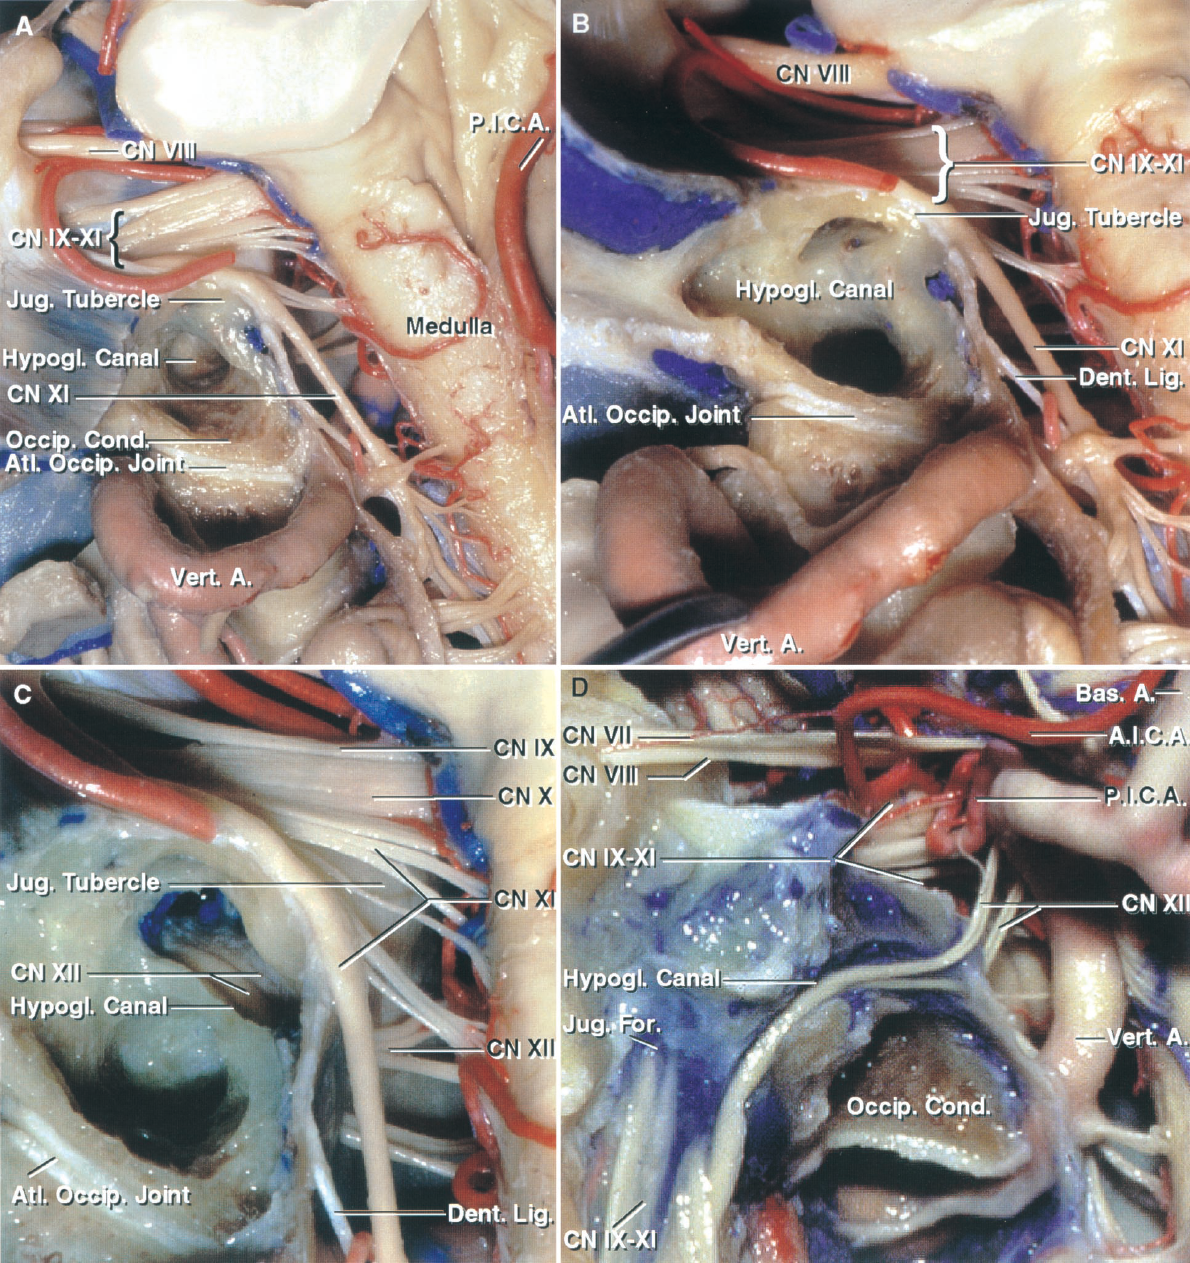 FIGURE 7.5. Posterior view of the left cerebellopontine angle. A, the glossopharyngeal, vagus, accessory, and hypoglossal nerves arise from the medulla. The hypoglossal canal has been exposed by drilling the cancellous bone above the occipital condyle. The posterior root of the transverse process of C1 has been removed. The accessory nerve crosses the jugular tubercle, the latter acting as a trochlea around which the accessory nerve courses to reach the jugular foramen. B, enlarged view. The area above the occipital condyle has been drilled to further expose the cortical bone around the hypoglossal canal. The atlanto-occipital joint has been preserved. C, the cortical bone lining the hypoglossal canal has been opened to expose the hypoglossal nerve and the hypoglossal venous plexus in the canal. D, anterior view. The anterior surface of the posterior fossa and the anterior wall of the hypoglossal canal have been removed to expose the hypoglossal nerve in its canal. The rootlets of the hypoglossal nerve originate ventral to the inferior olive and join before exiting the hypoglossal canal. The glossopharyngeal, vagus, and accessory nerves penetrate the dura on the medial side of the jugular bulb. The hypoglossal nerve exits the hypoglossal canal on the medial side of the jugular foramen. A., artery; A.I.C.A., anteroinferior cerebellar artery; Atl., atlanto; Bas., basilar; CN, cranial nerve; Cond., condyle; Dent., dentate; For., foramen; Hypogl., hypoglossal; Jug., jugular; Lig., ligament; Occip., occipital; P.I.C.A., posteroinferior cerebellar artery; Vert., vertebral.